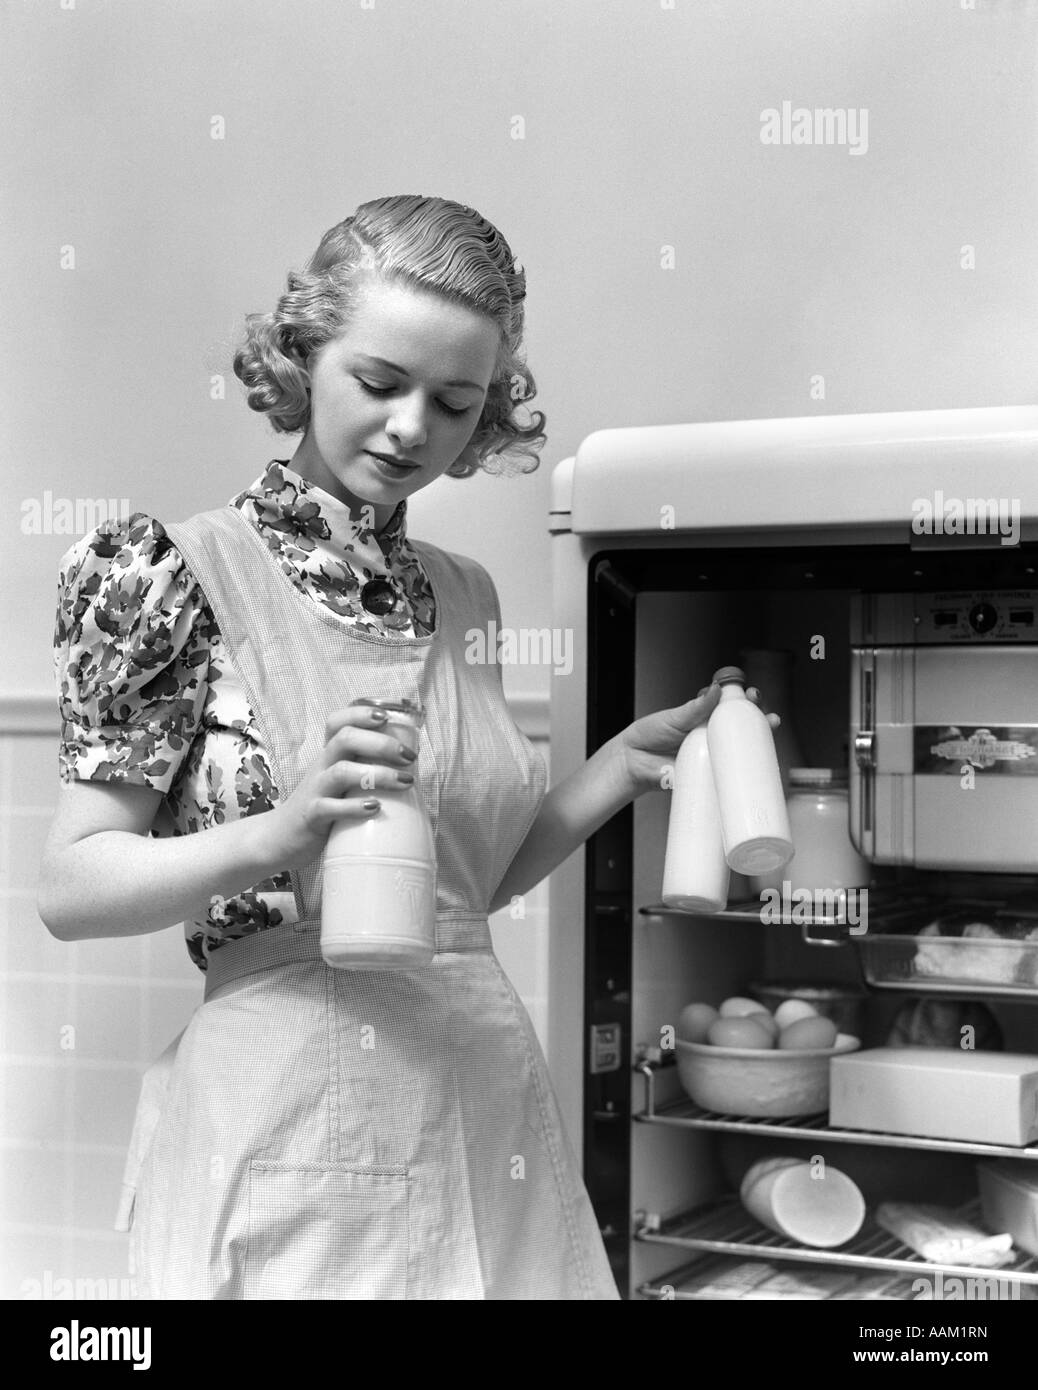 White tudor apron - 1930s Woman Wearing A White Apron Taking Milk Out Of The Refrigerator Stock Image